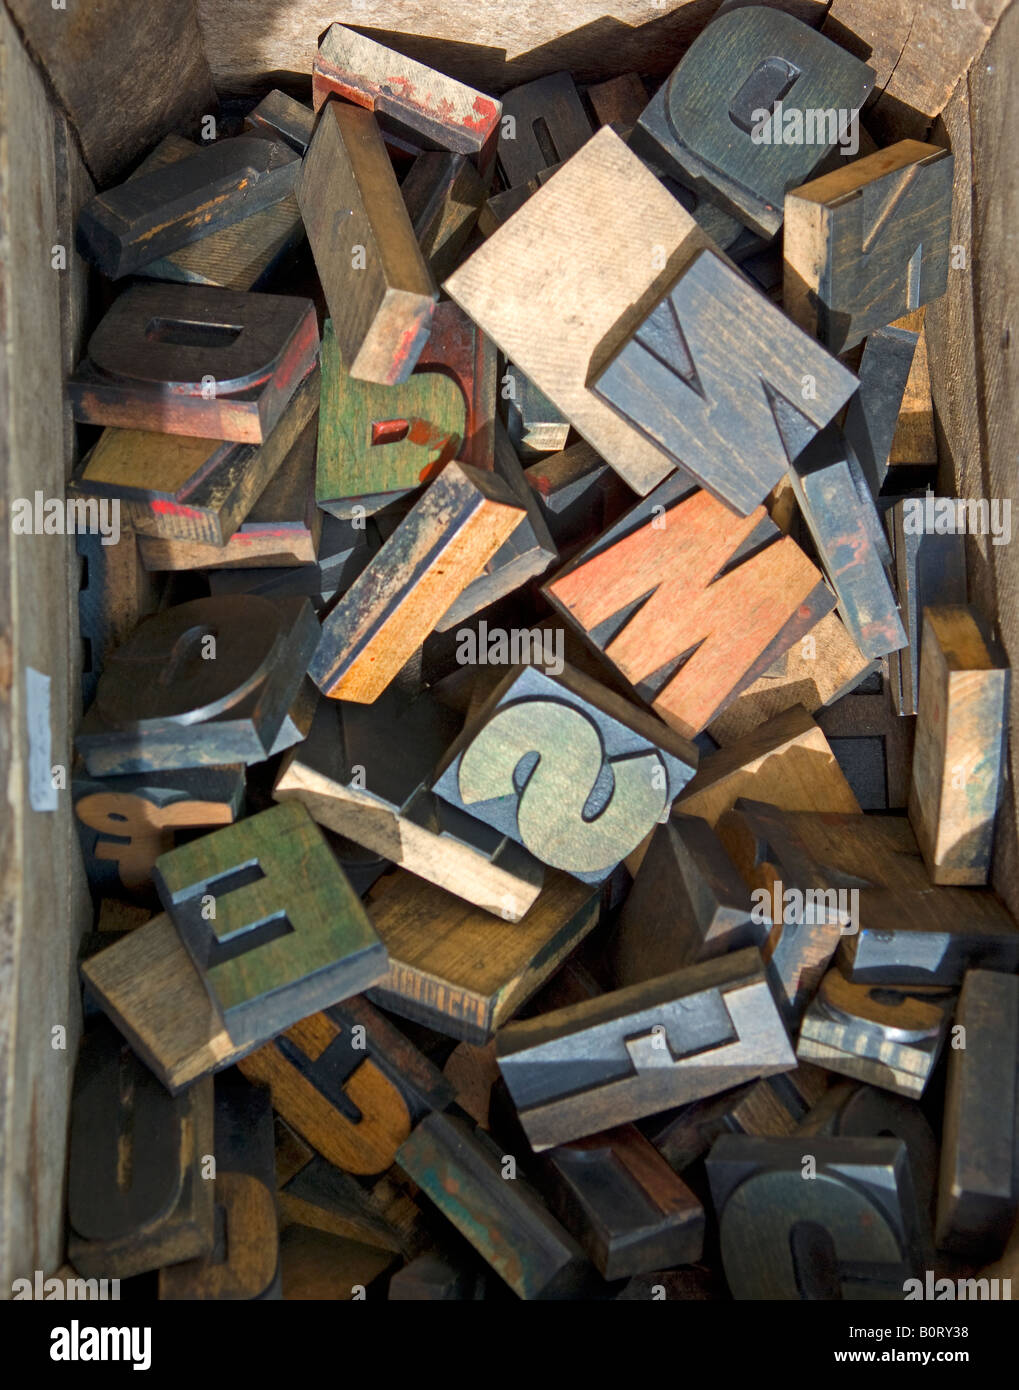 woodblock letters - Stock Image